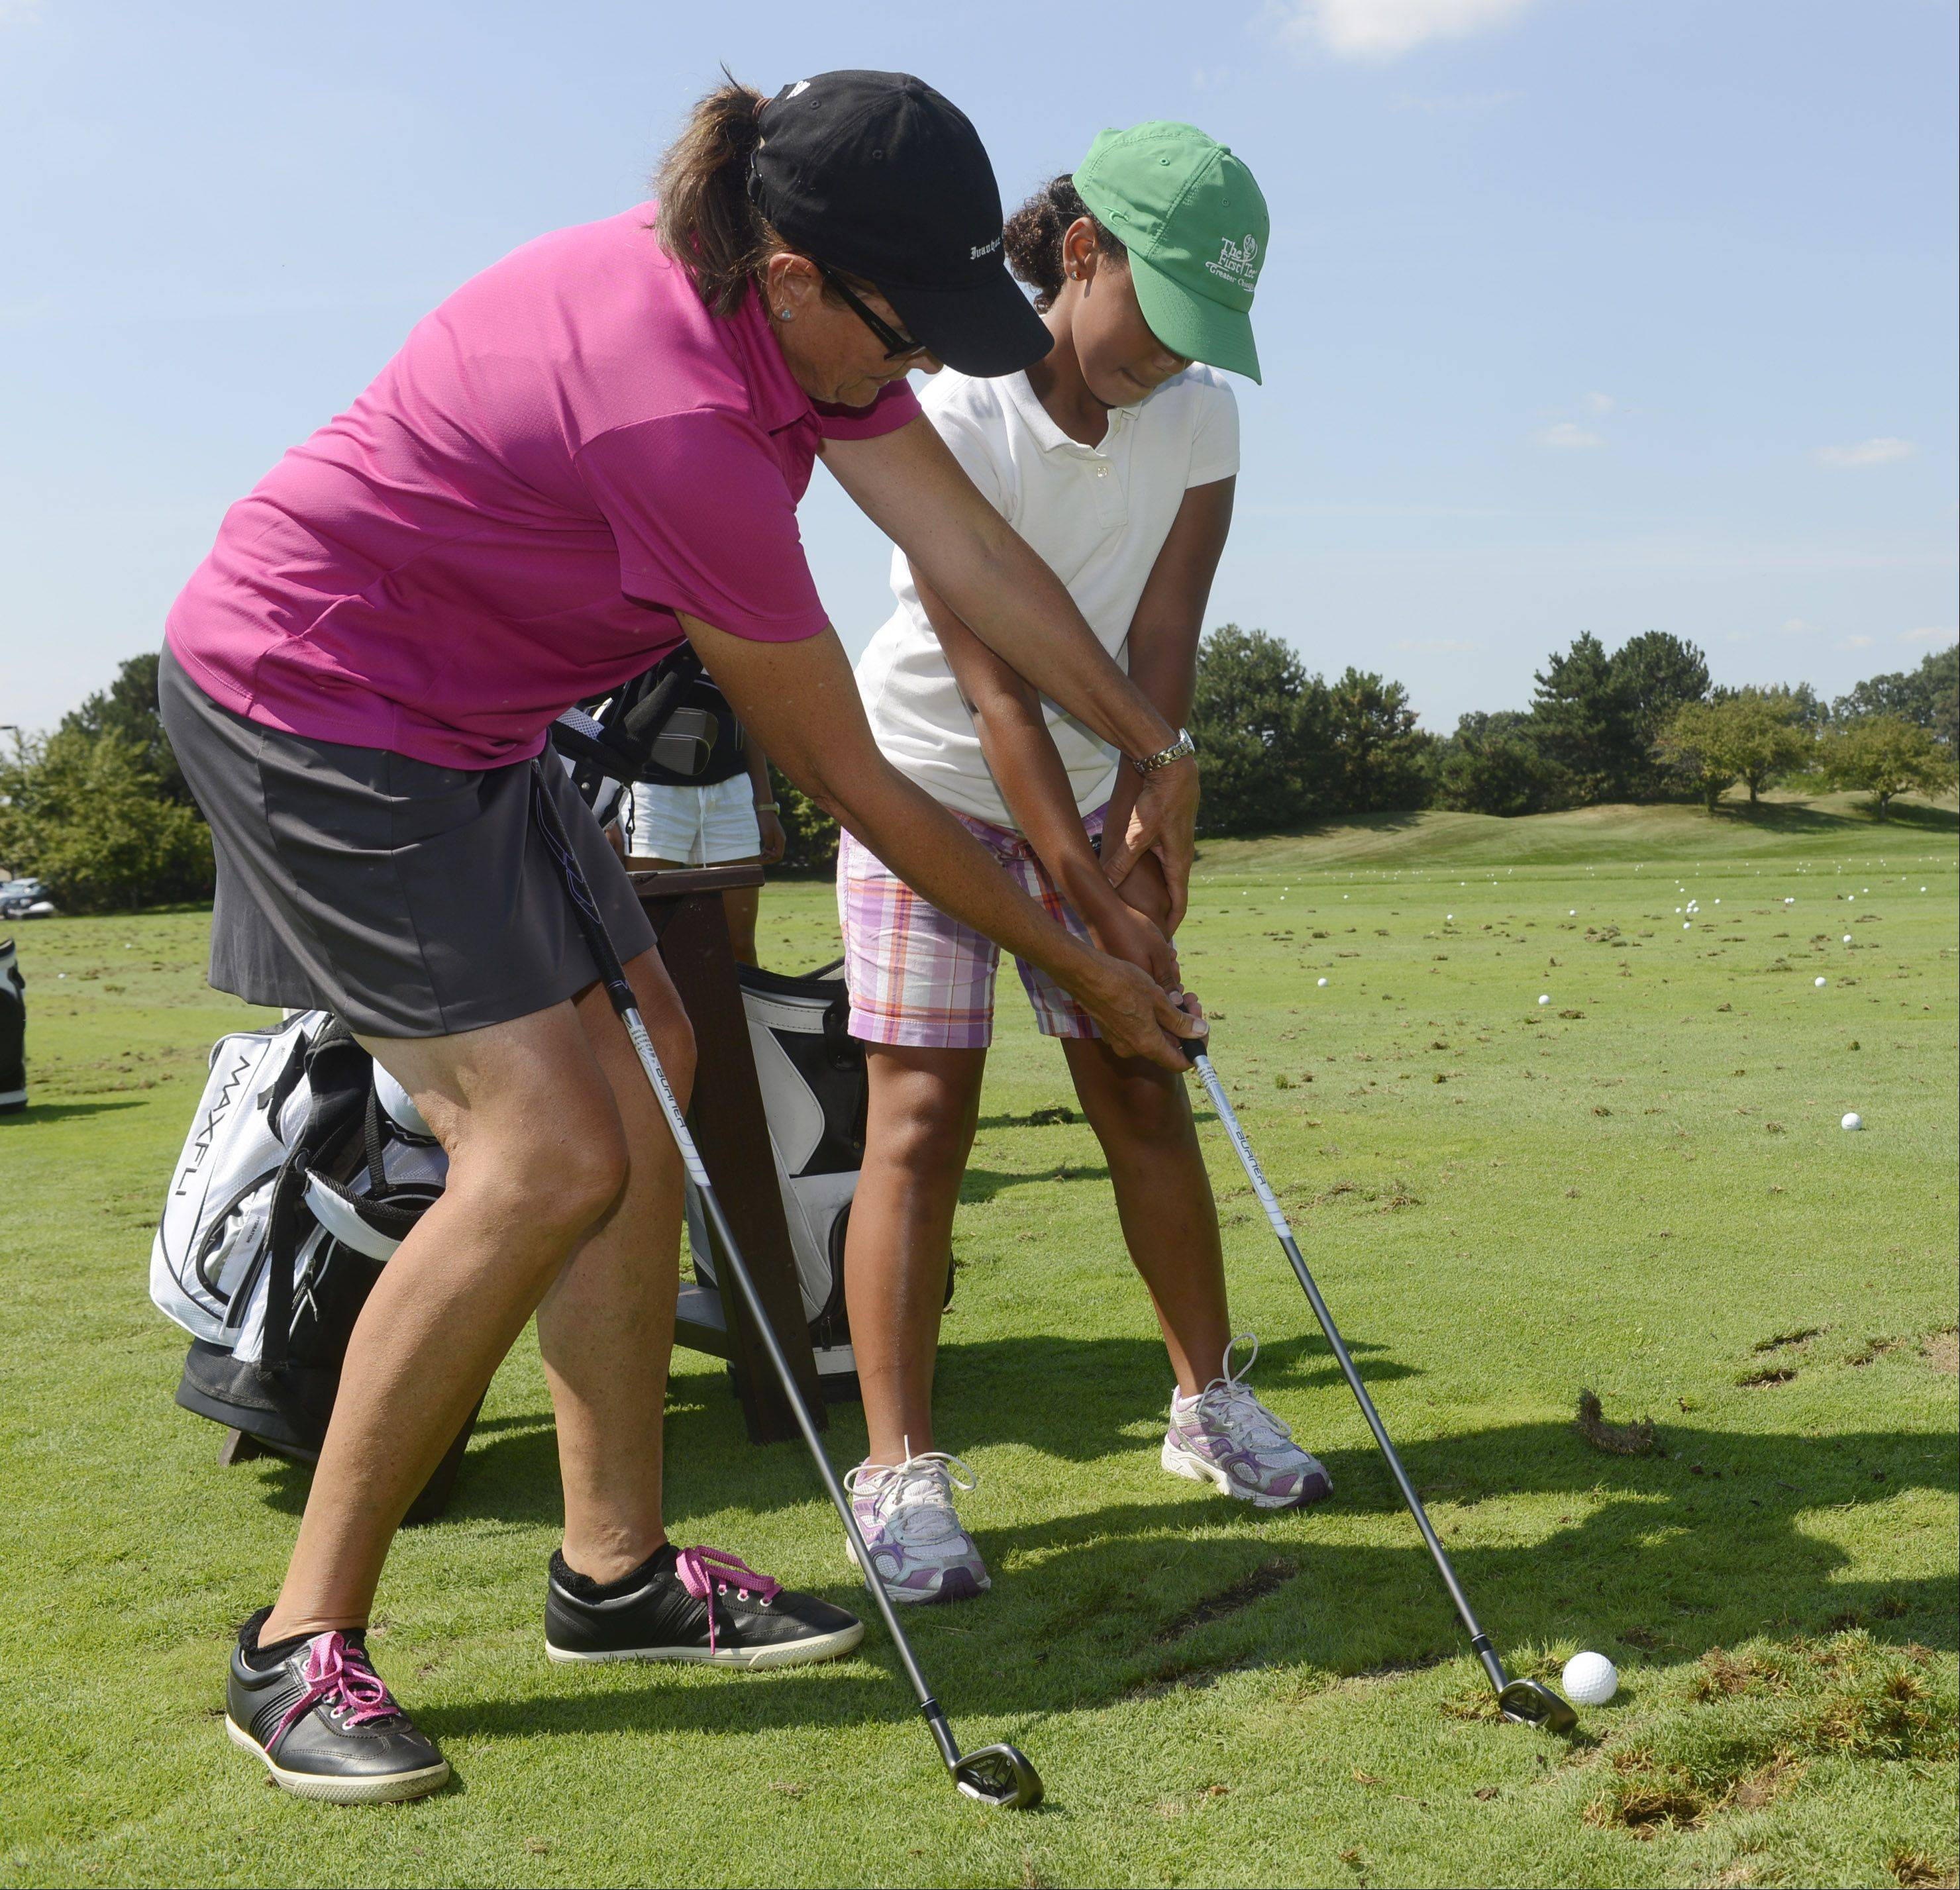 Golf pro Sue Anderson helps Zinzi Steele, 10, of Evanston during the First Tee golf event at Ivanhoe Club near Mundelein. First Tee uses the game of golf to provide education programs that build character. Thirteen kids were rewarded for their good choices with a special day at Ivanhoe.